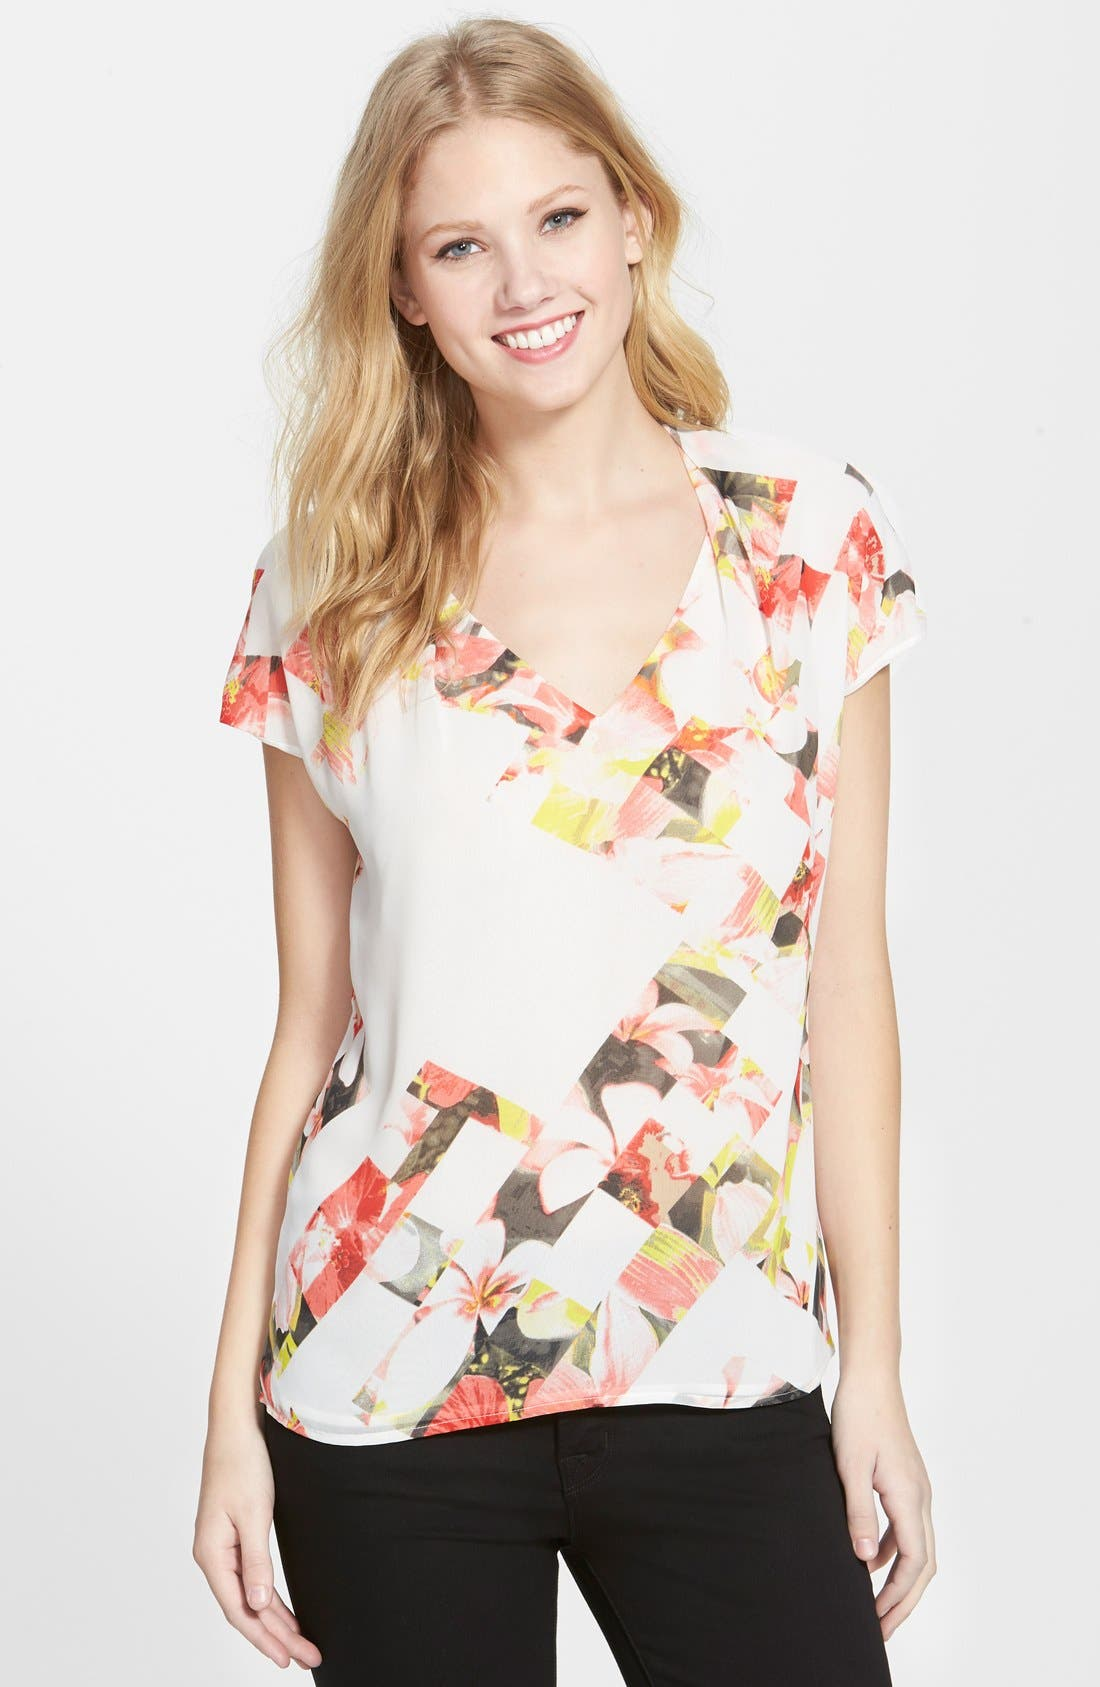 Alternate Image 1 Selected - Vince Camuto 'Broken Photo' Floral Print Cap Sleeve Blouse (Regular & Petite)